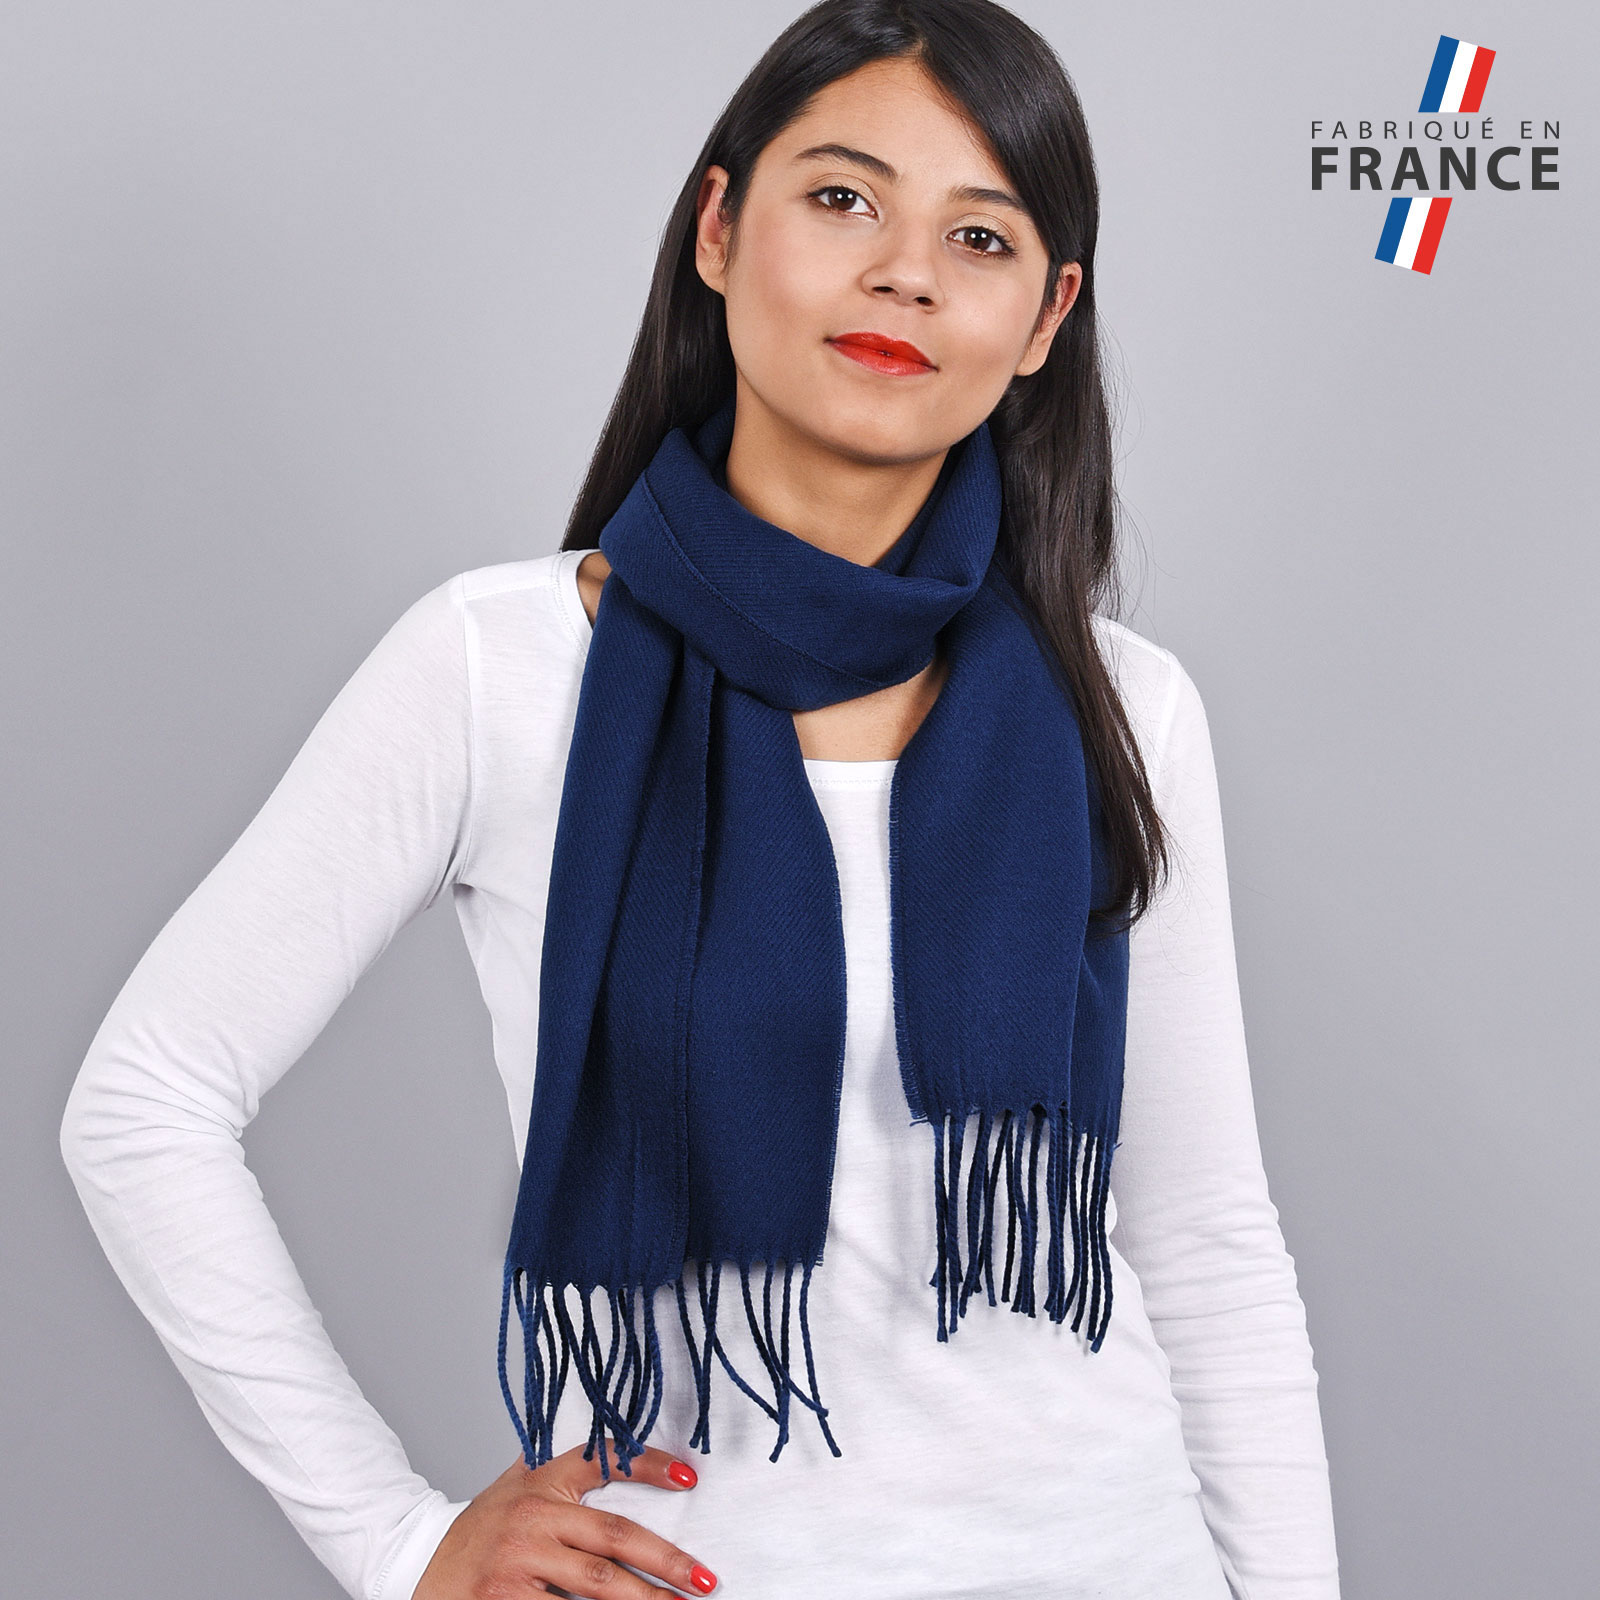 AT-03233-VF16-LB_FR-echarpe-a-franges-bleue-fabrication-francaise